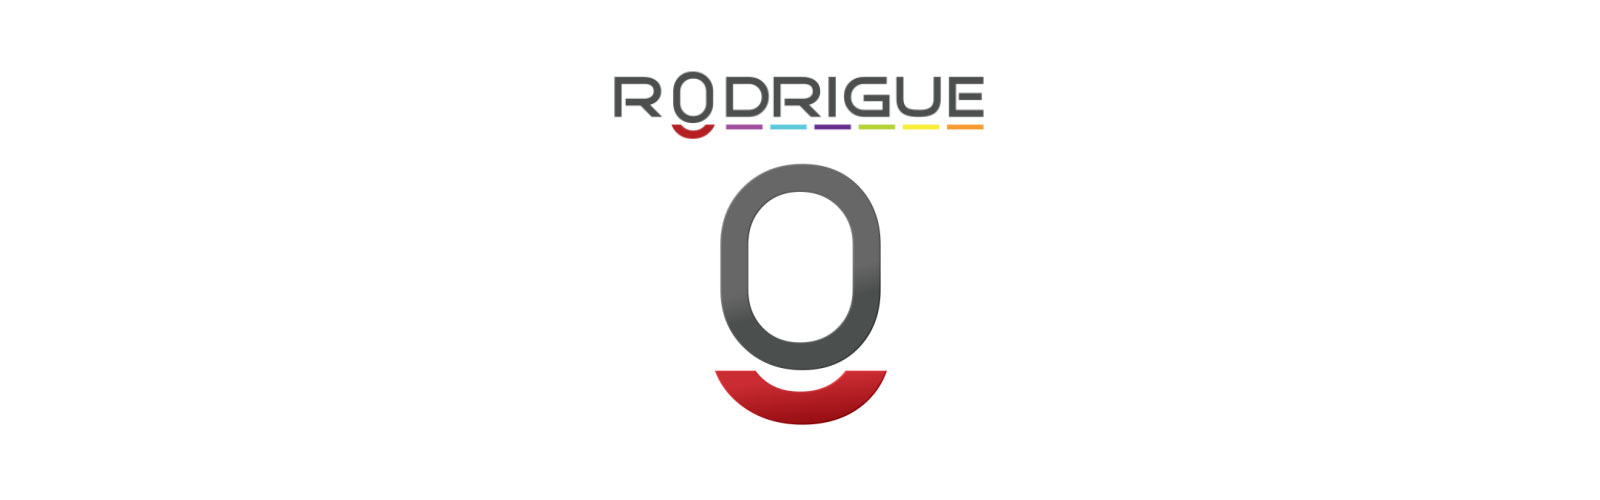 rodrigue-solutions